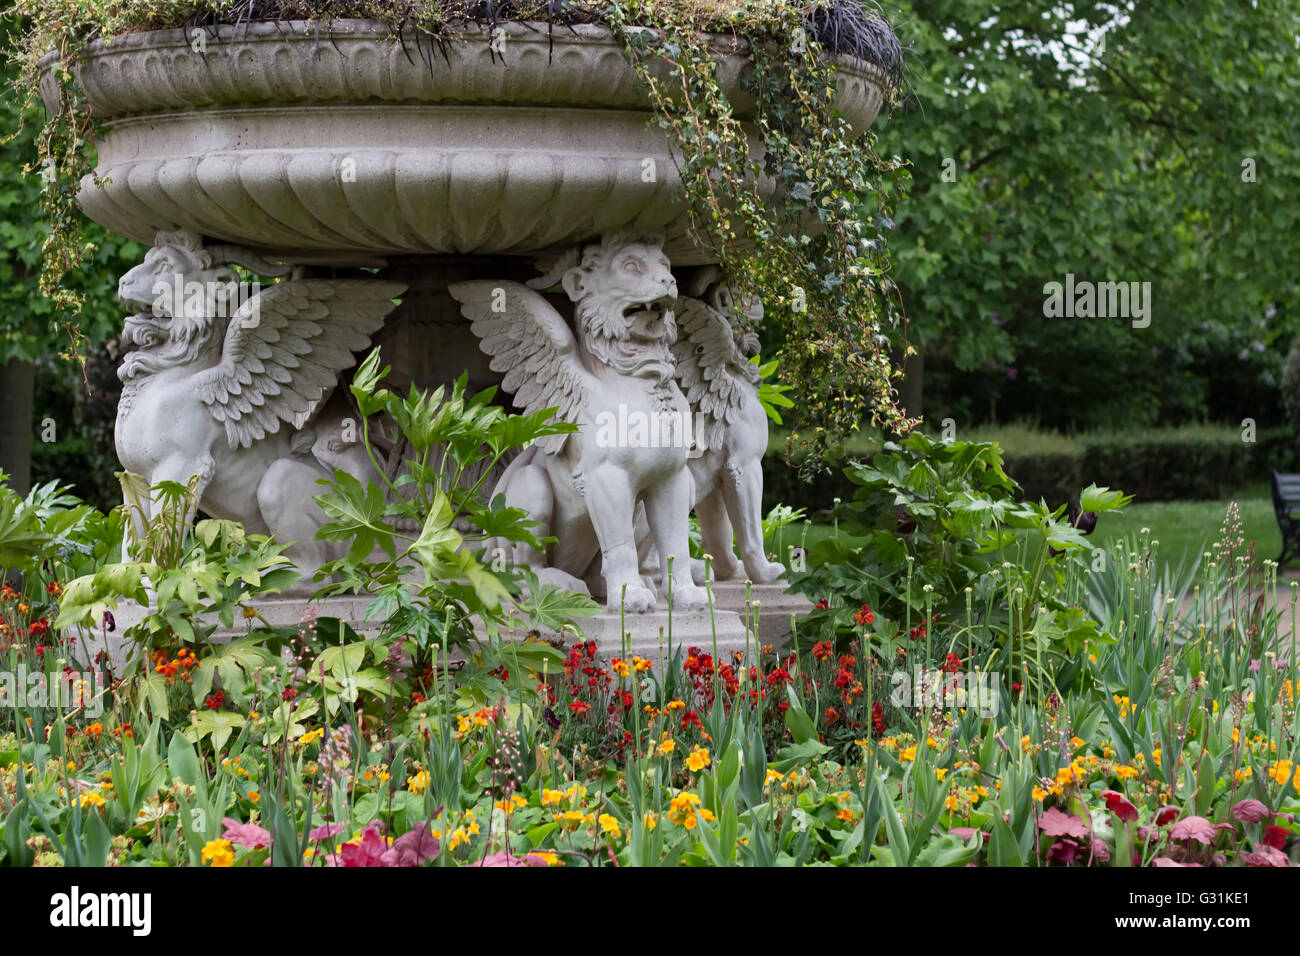 London, England - May 19, 2016: Stone winged lions among flowers in Regent's Park in London, England. - Stock Image